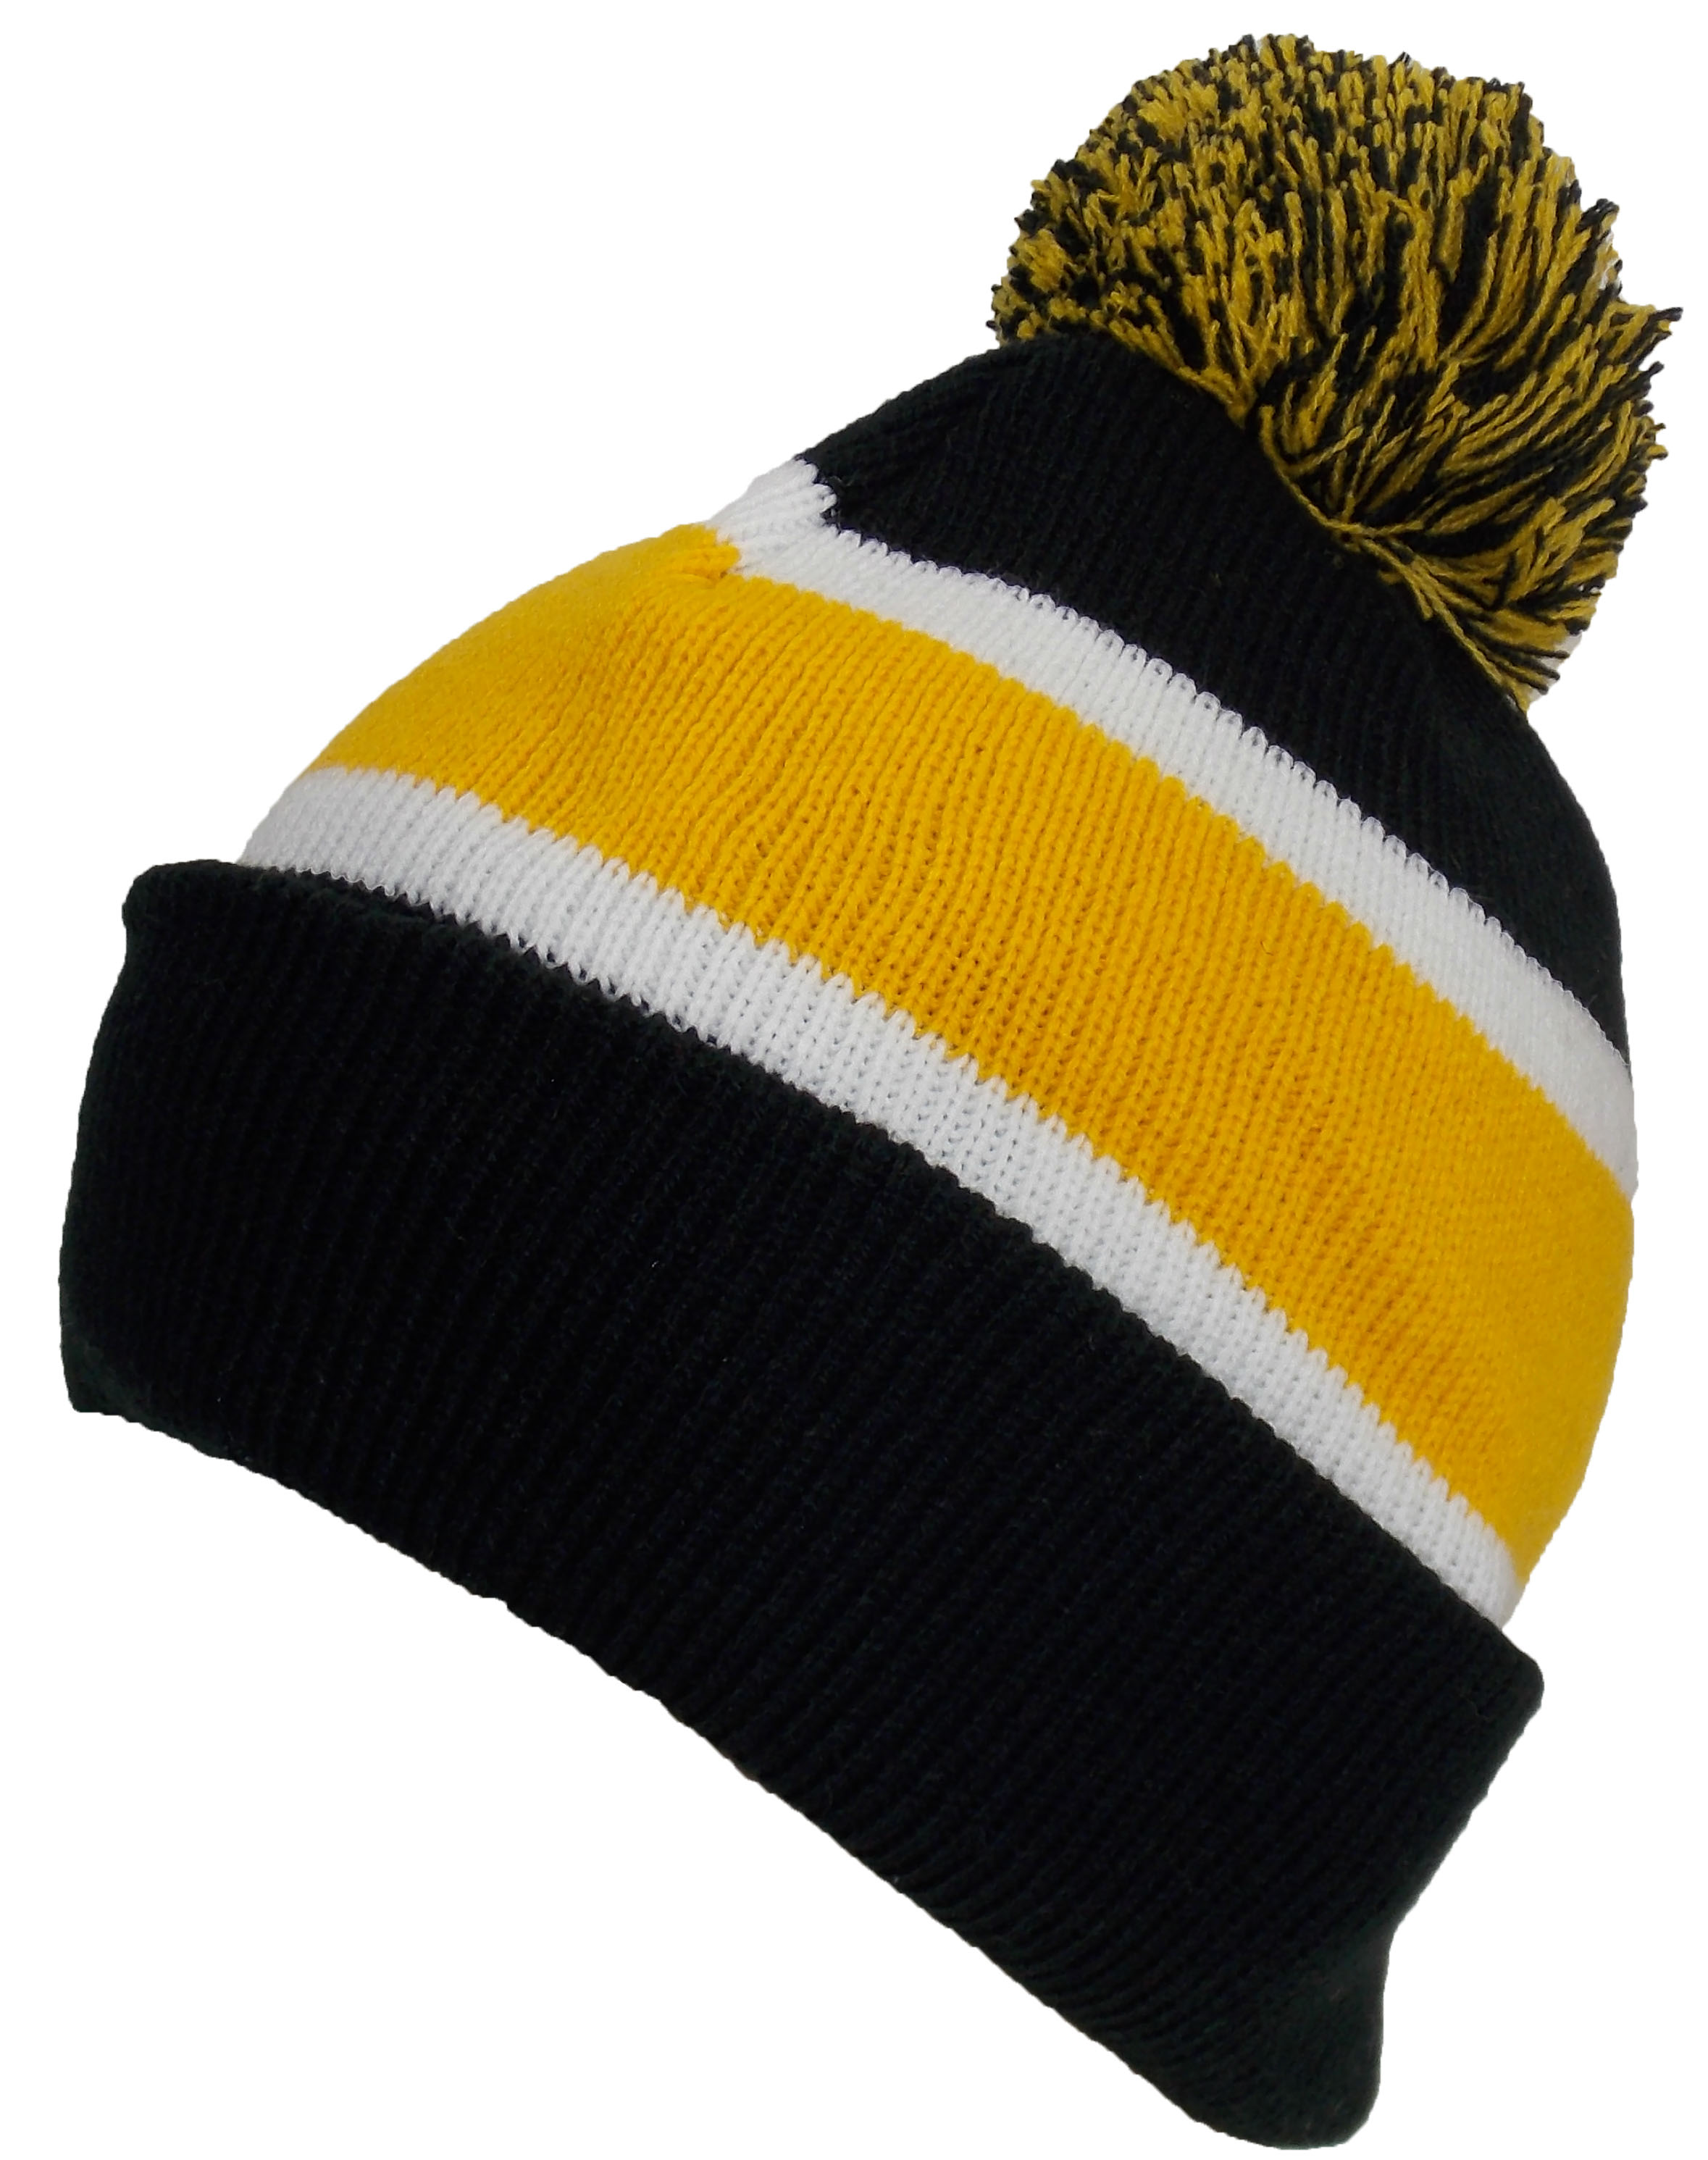 Best Winter Hats Quality Cuffed Hat with Large Pom Pom (Fits Large ... c39198a6774